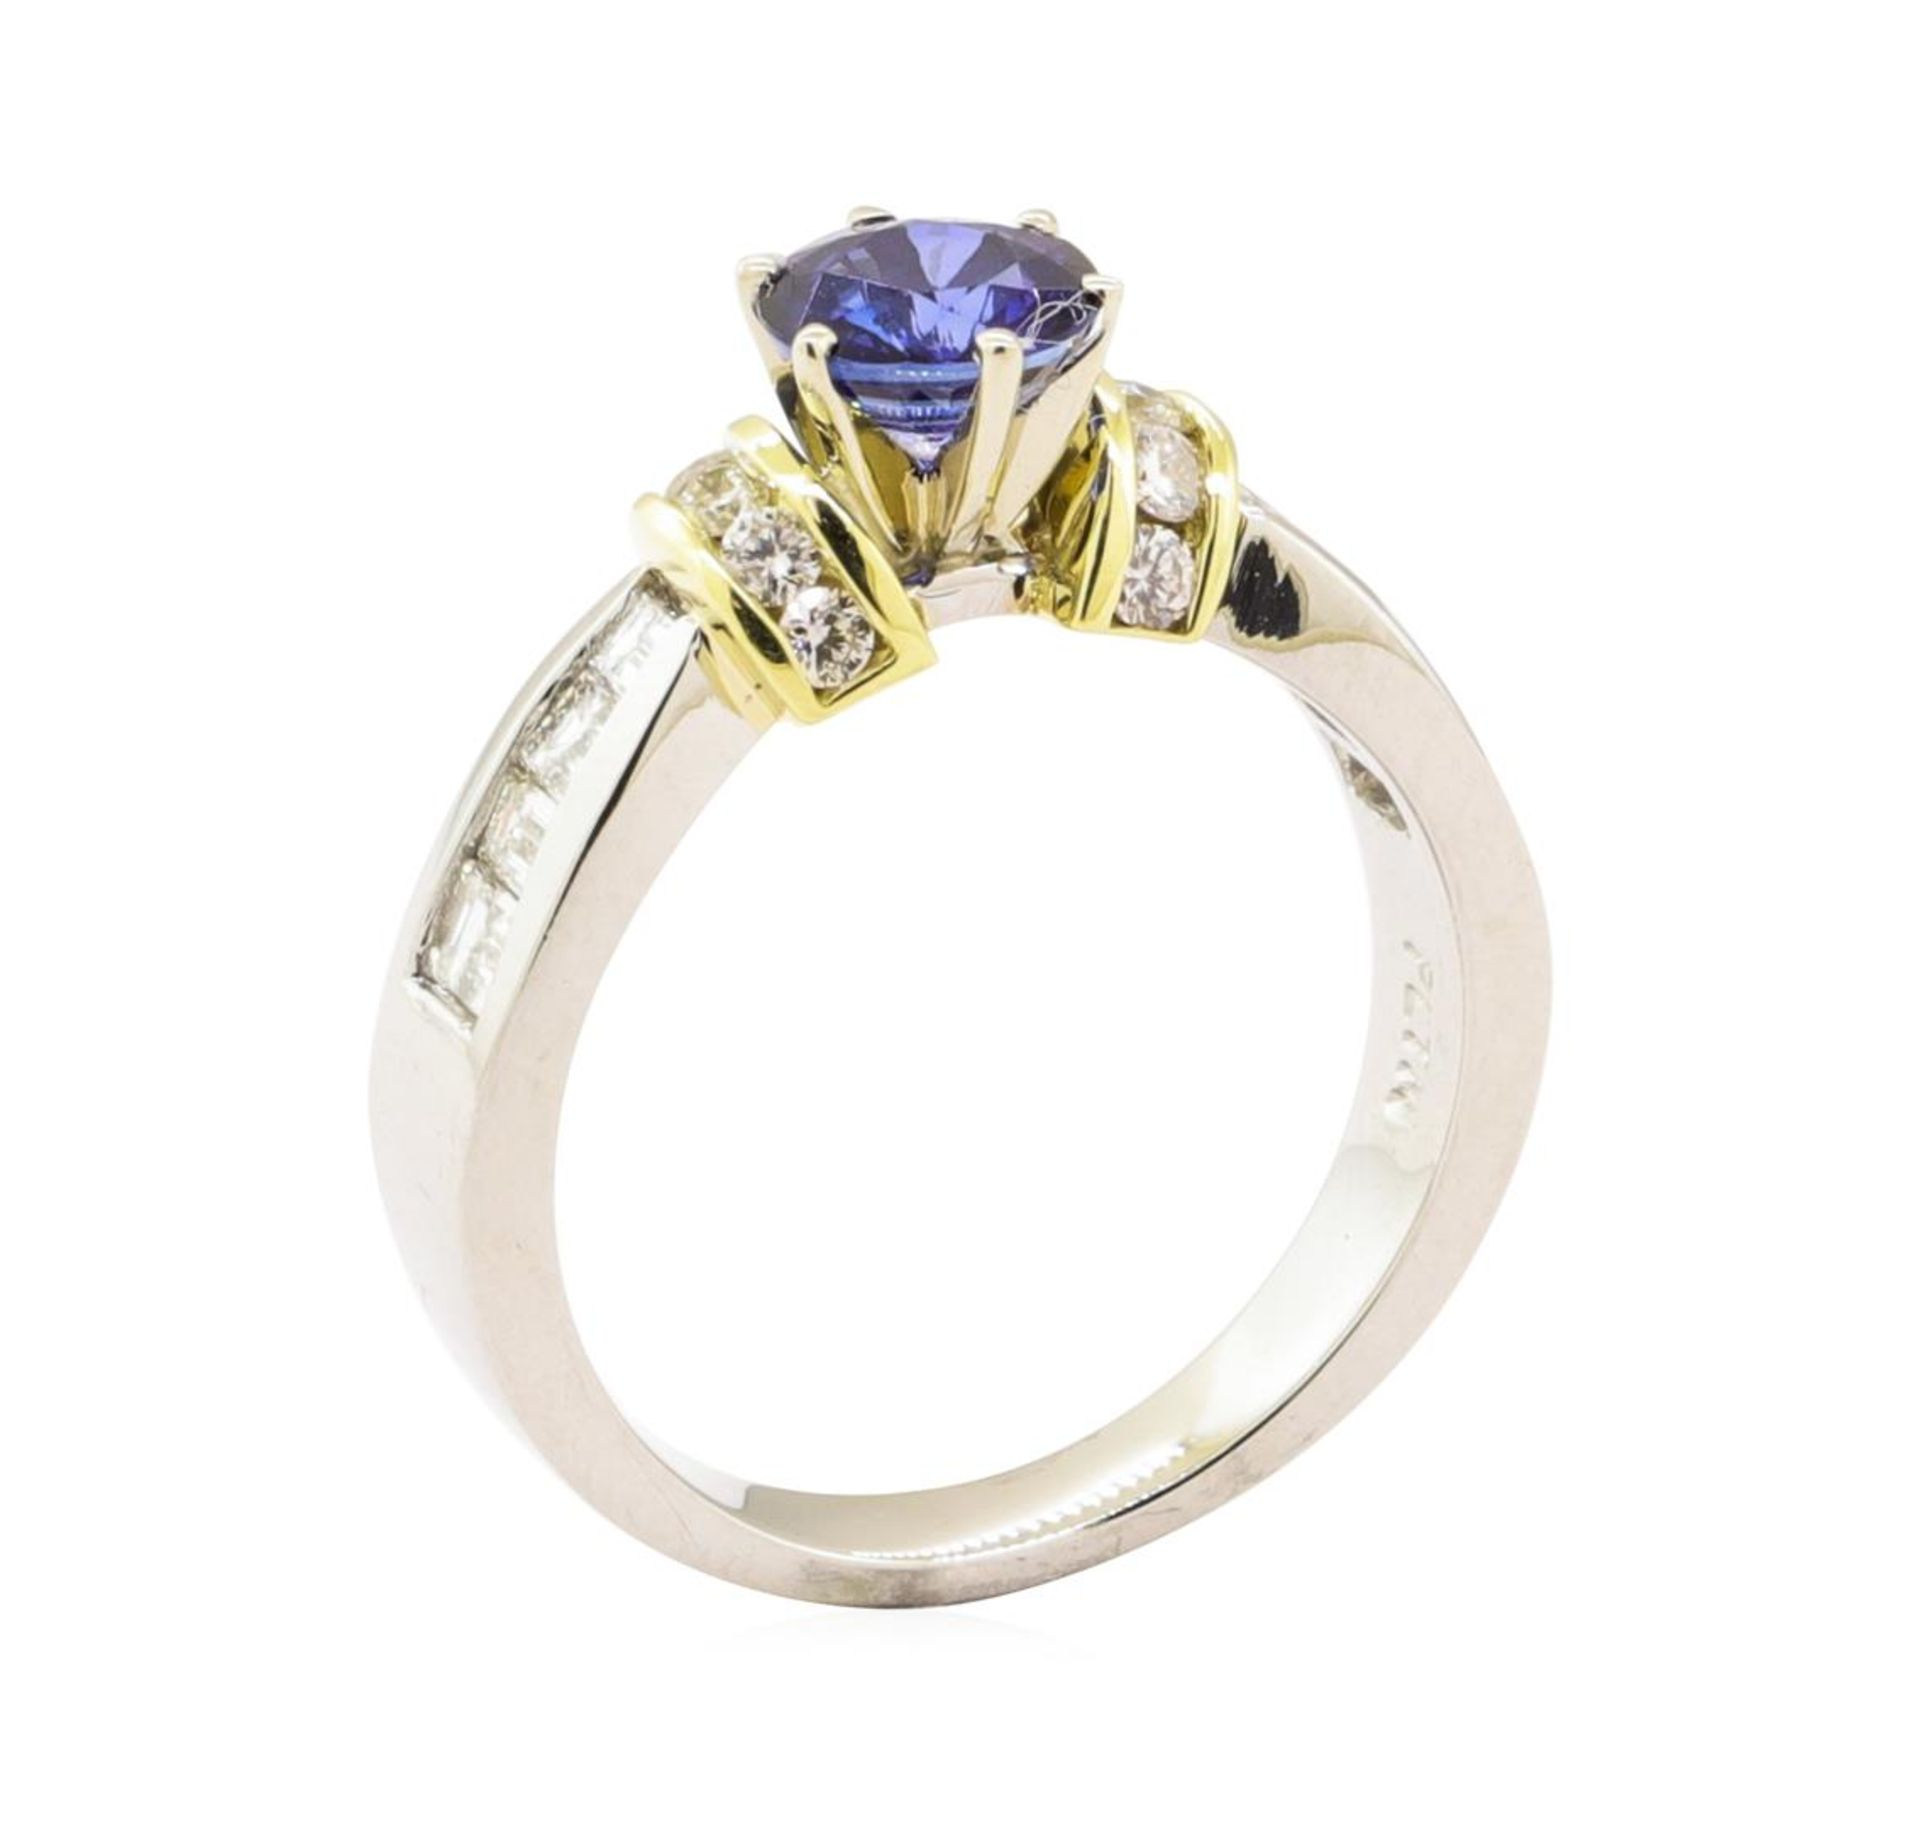 1.65 ctw Blue Sapphire And Diamond Ring - Platinum and 18KT Yellow Gold - Image 4 of 5